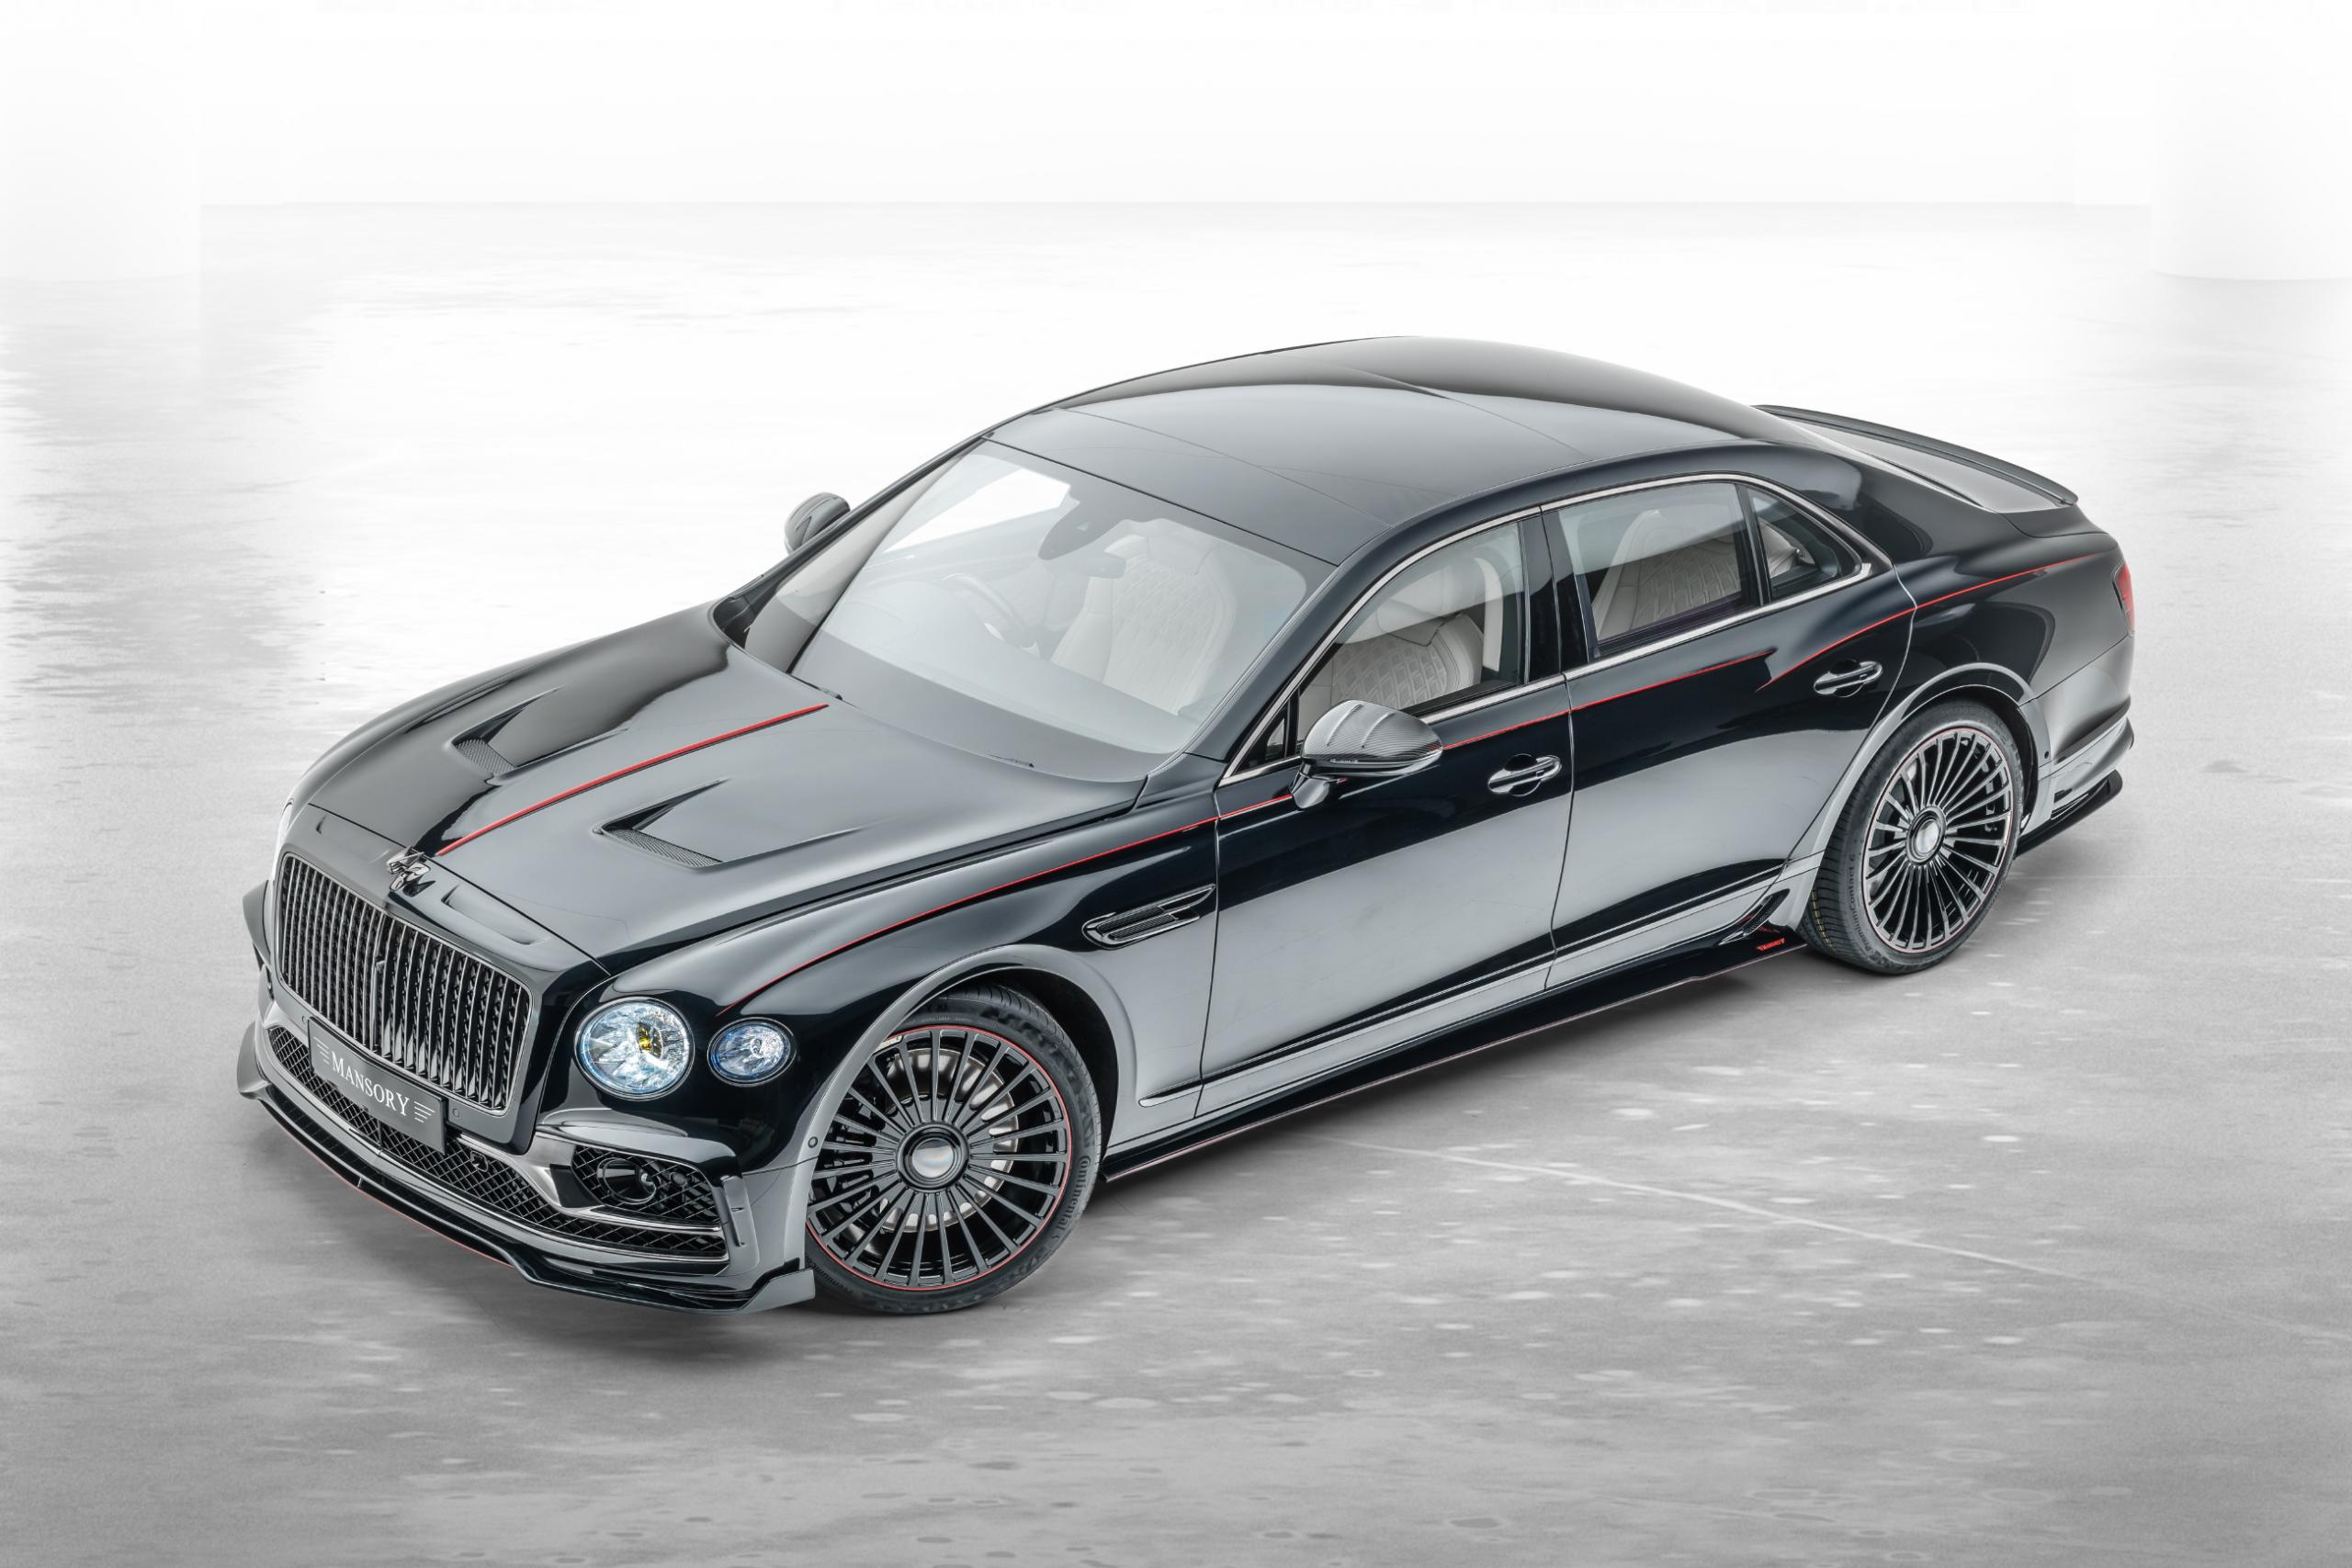 Bentley-Flying-Spur-by-Mansory-6